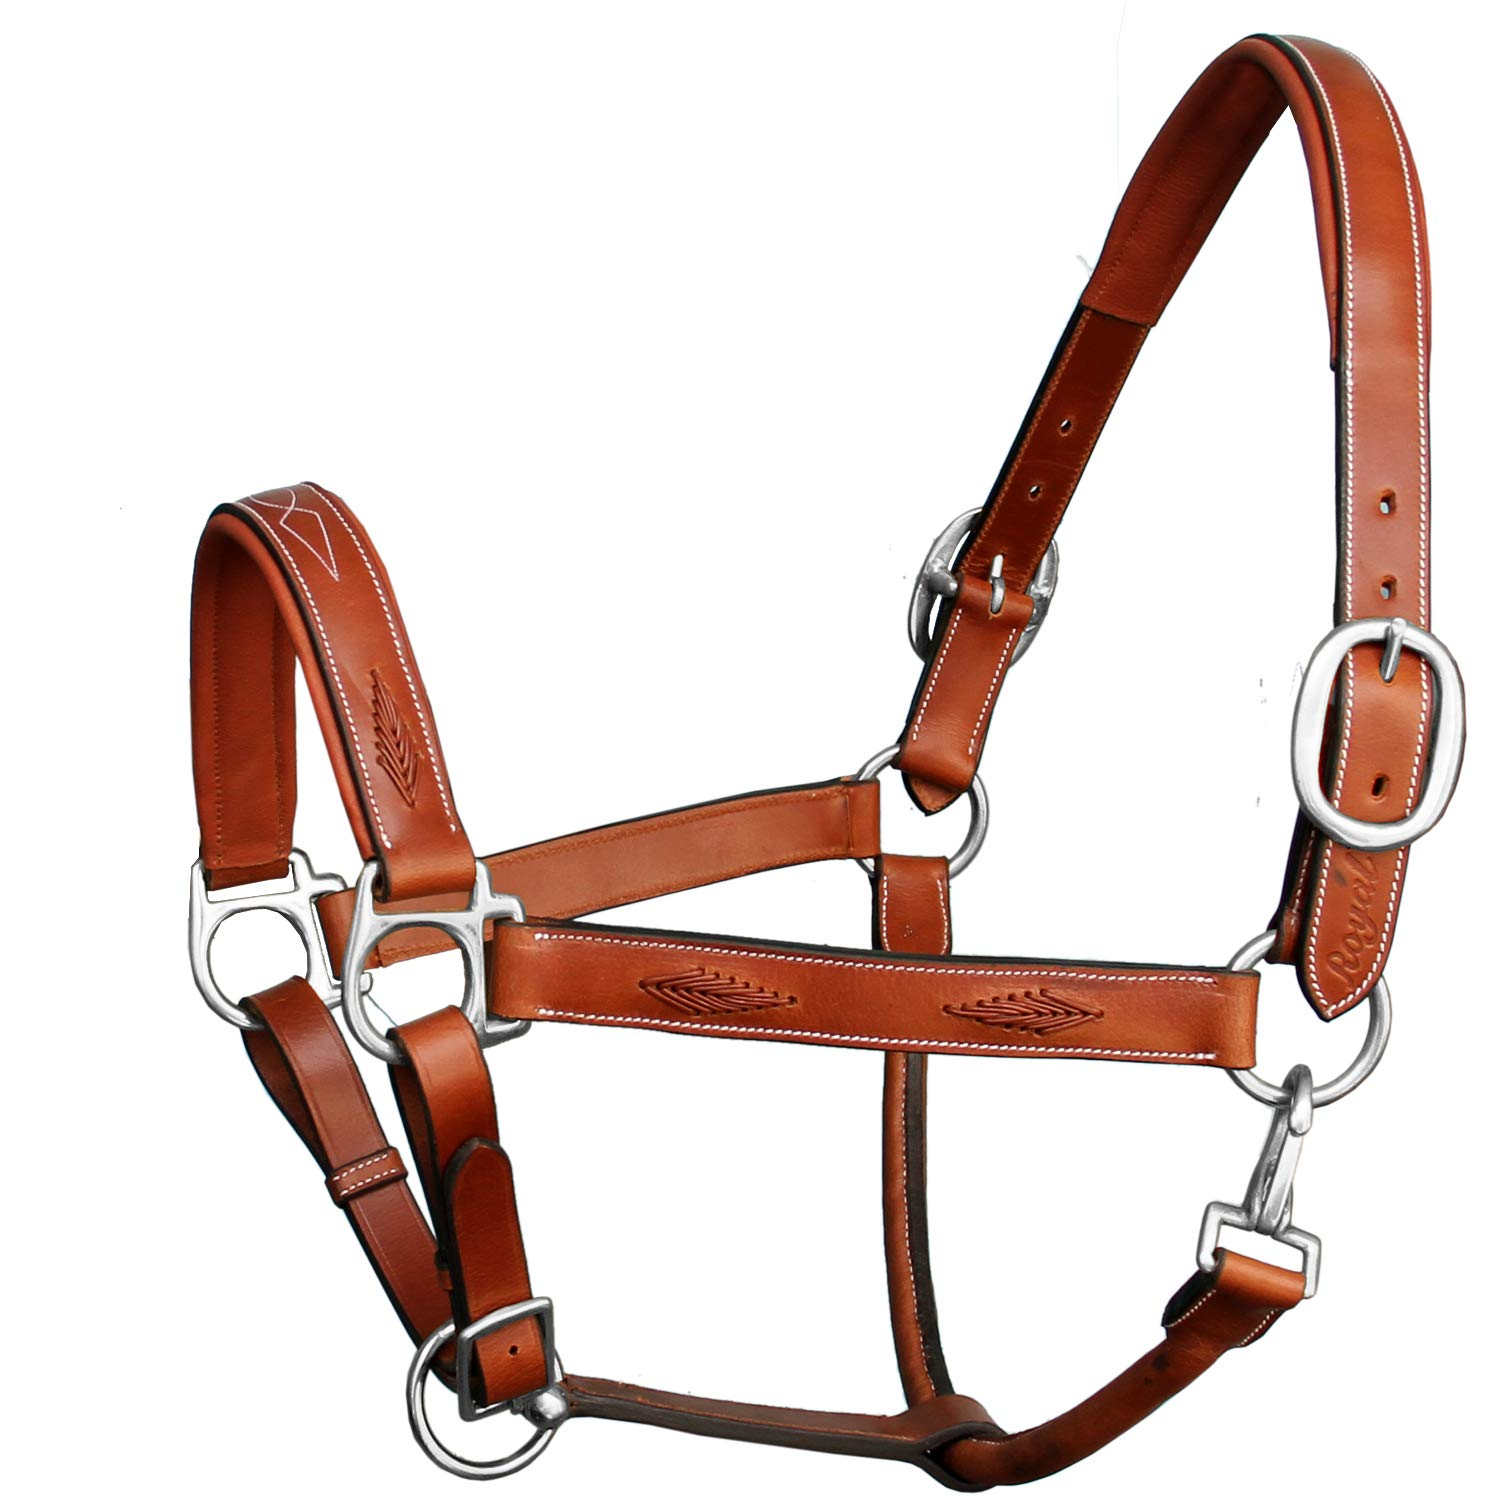 Conker (Tan Brown) Medium (Cob) Conker (Tan Brown) Medium (Cob) Exion Fancy Braided Padded Halter and Brass Nickel Buckles   Equestrian Show Jumping Padded Halter   English Horse Riding Premium Tack   Conker   Cob